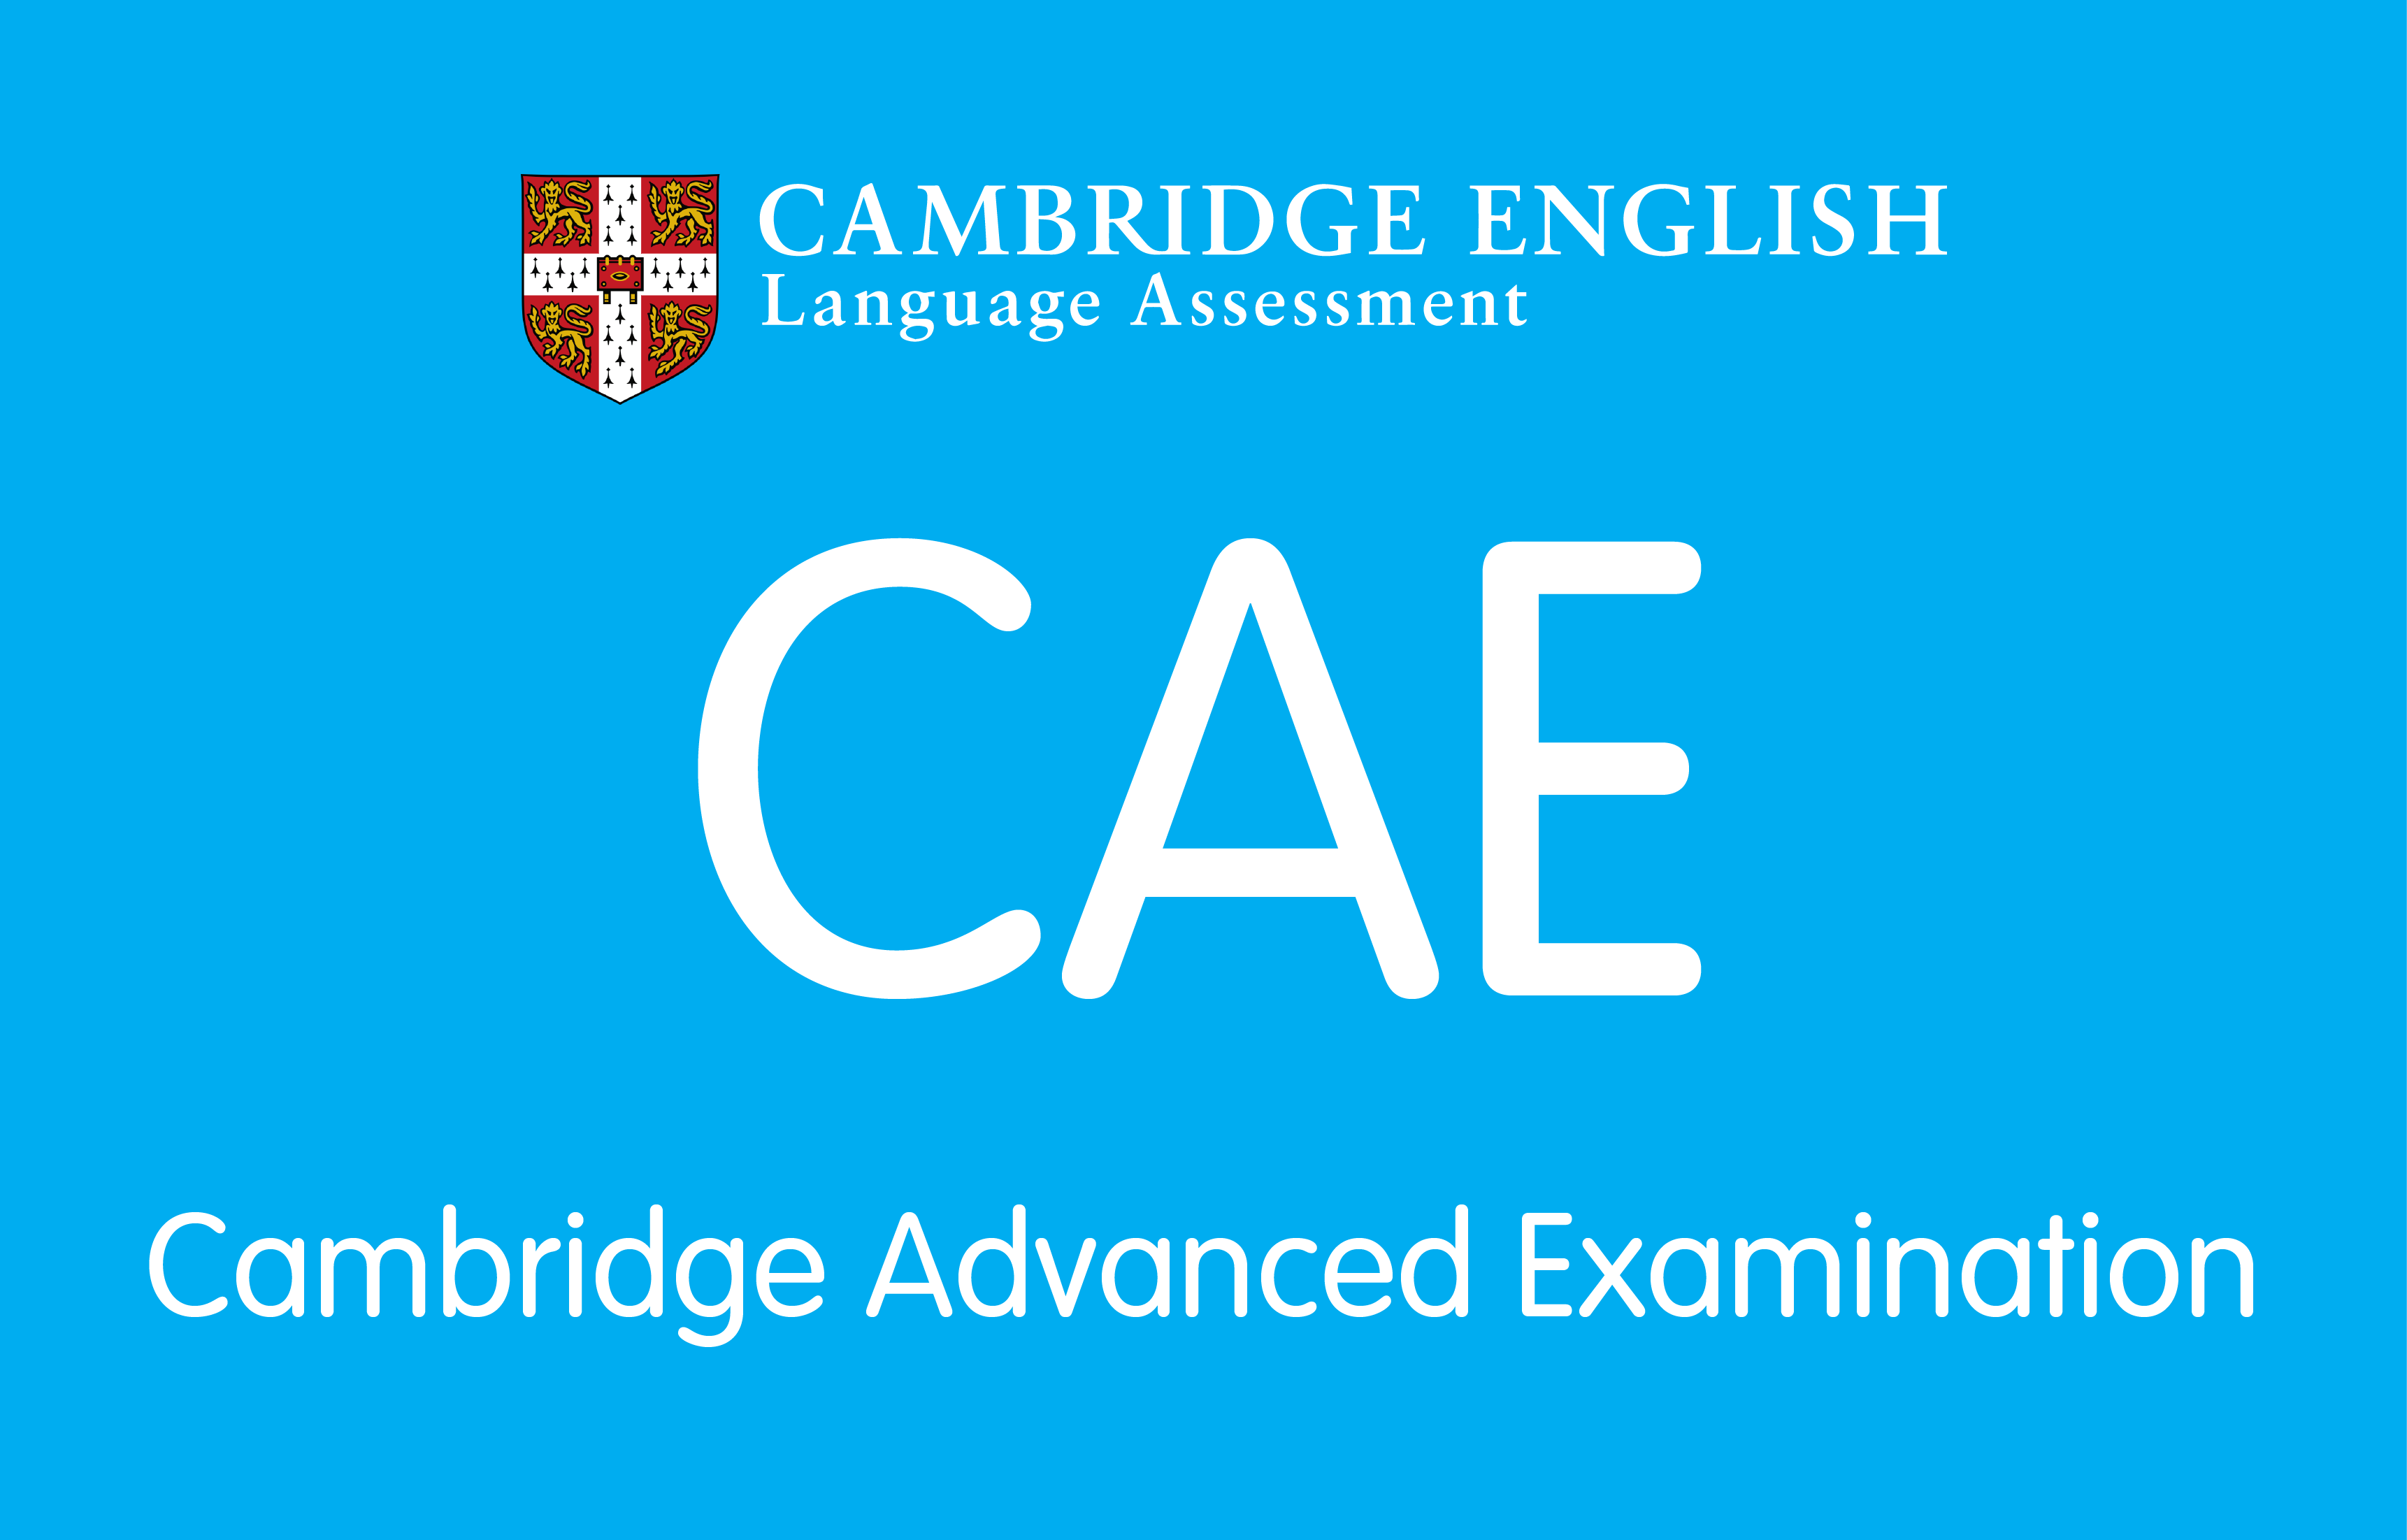 Learntalk testprepcategoryicons cambridge studies 06